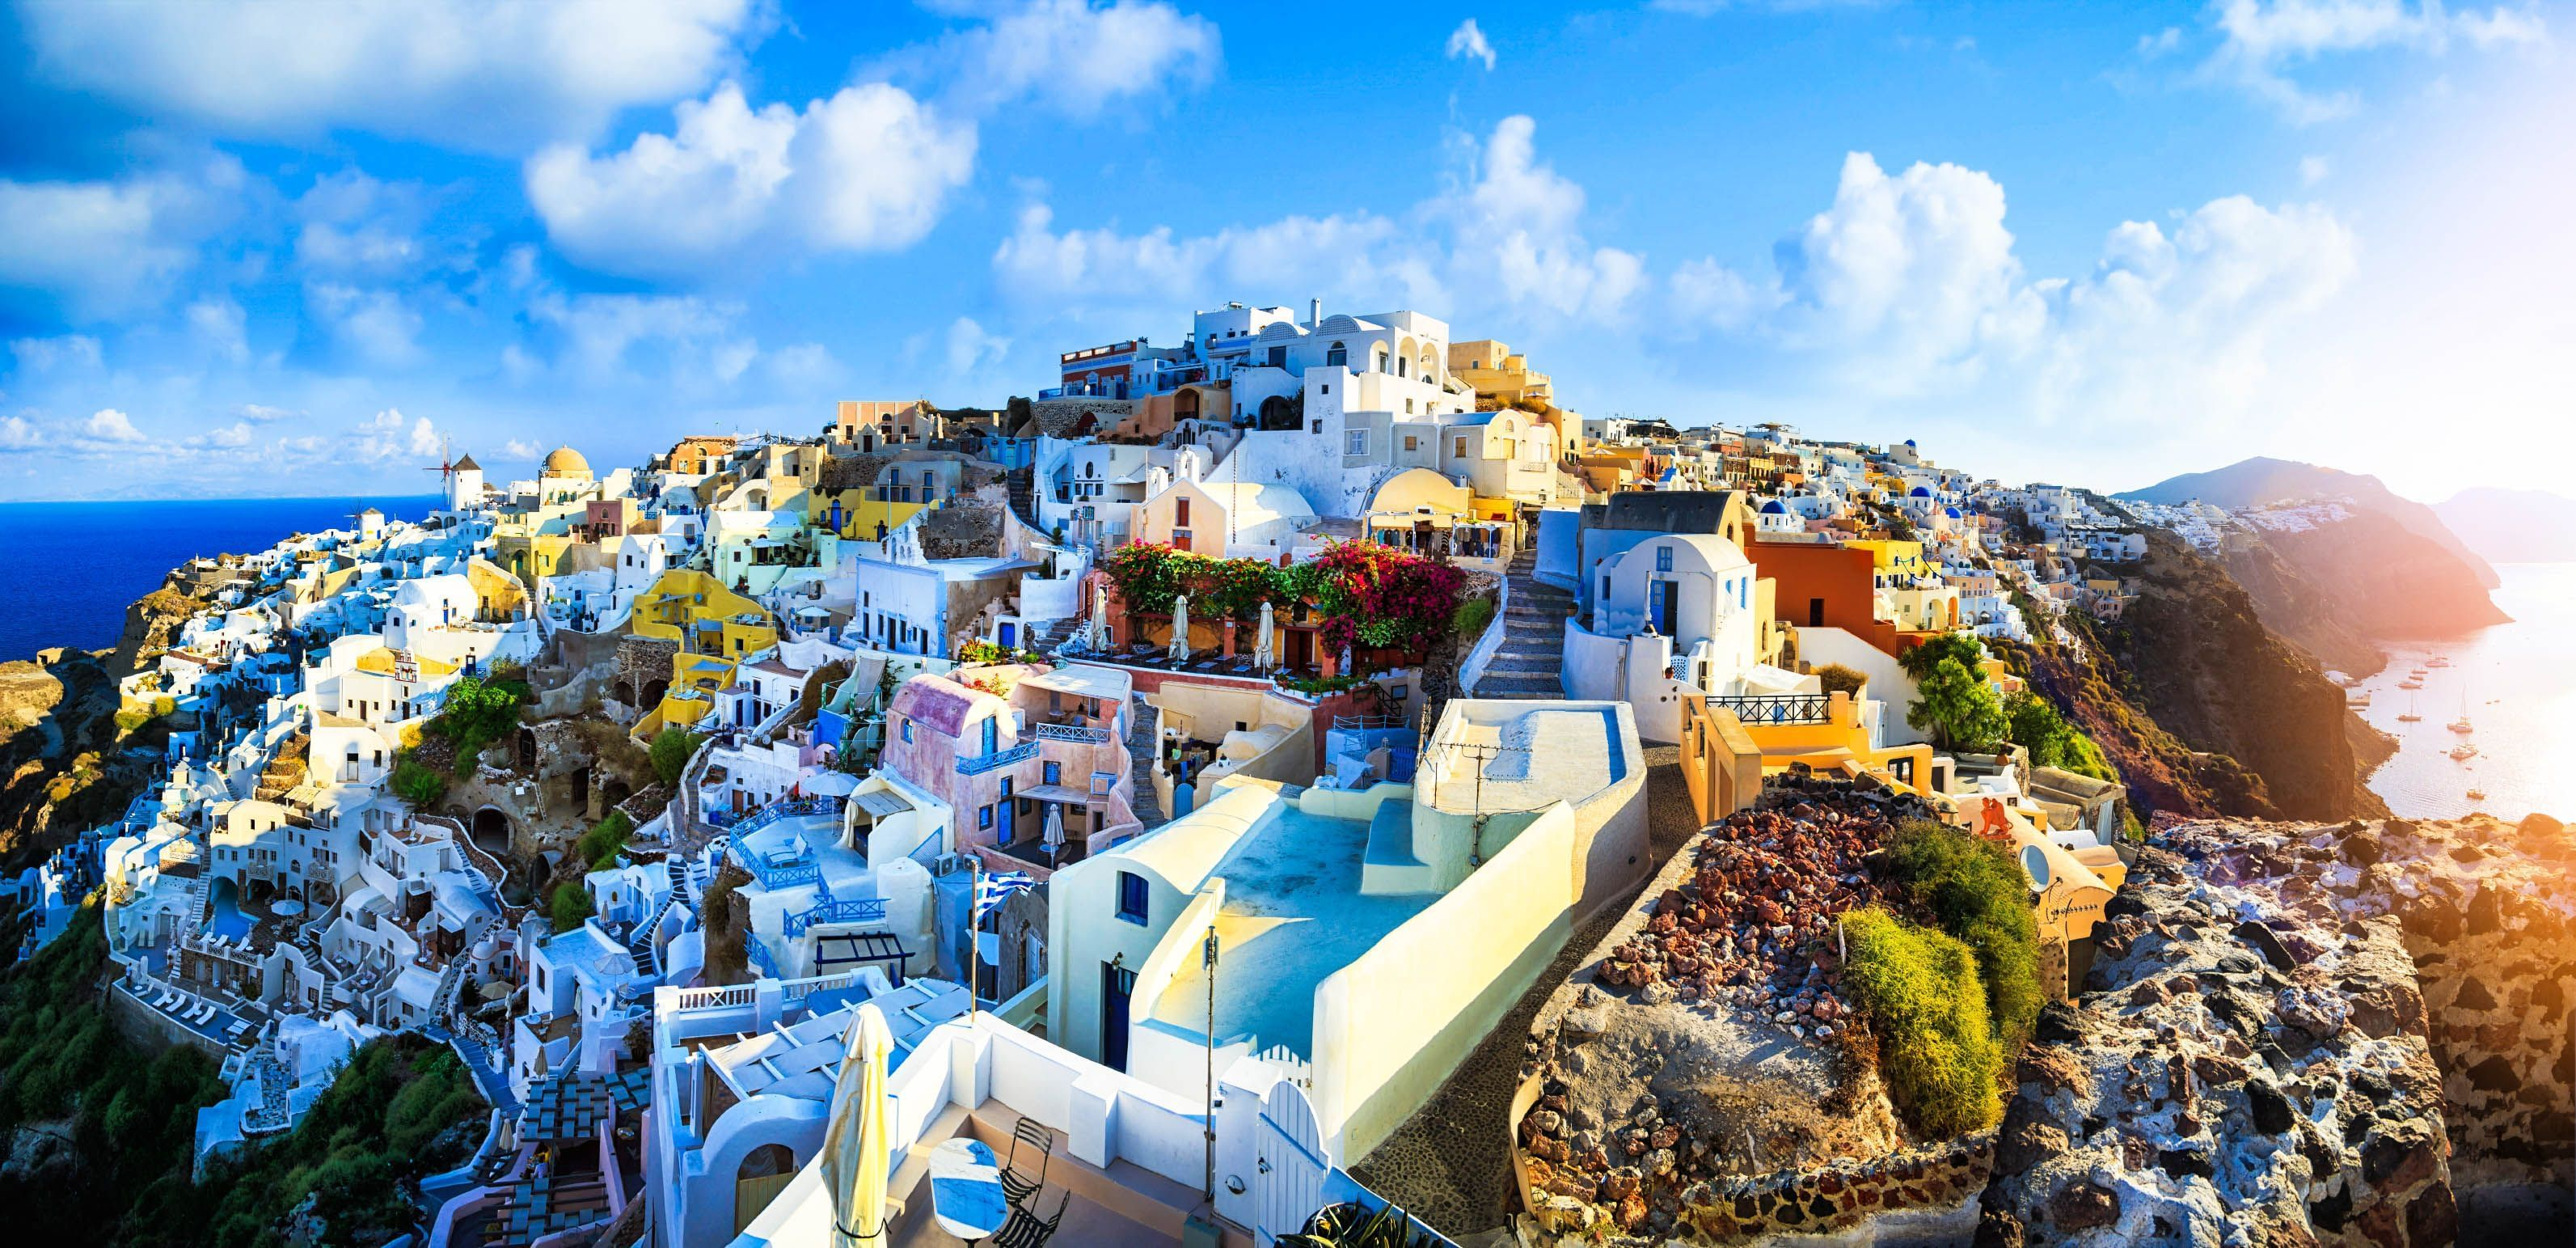 Travel guide to Santorini: Tourism and practical information